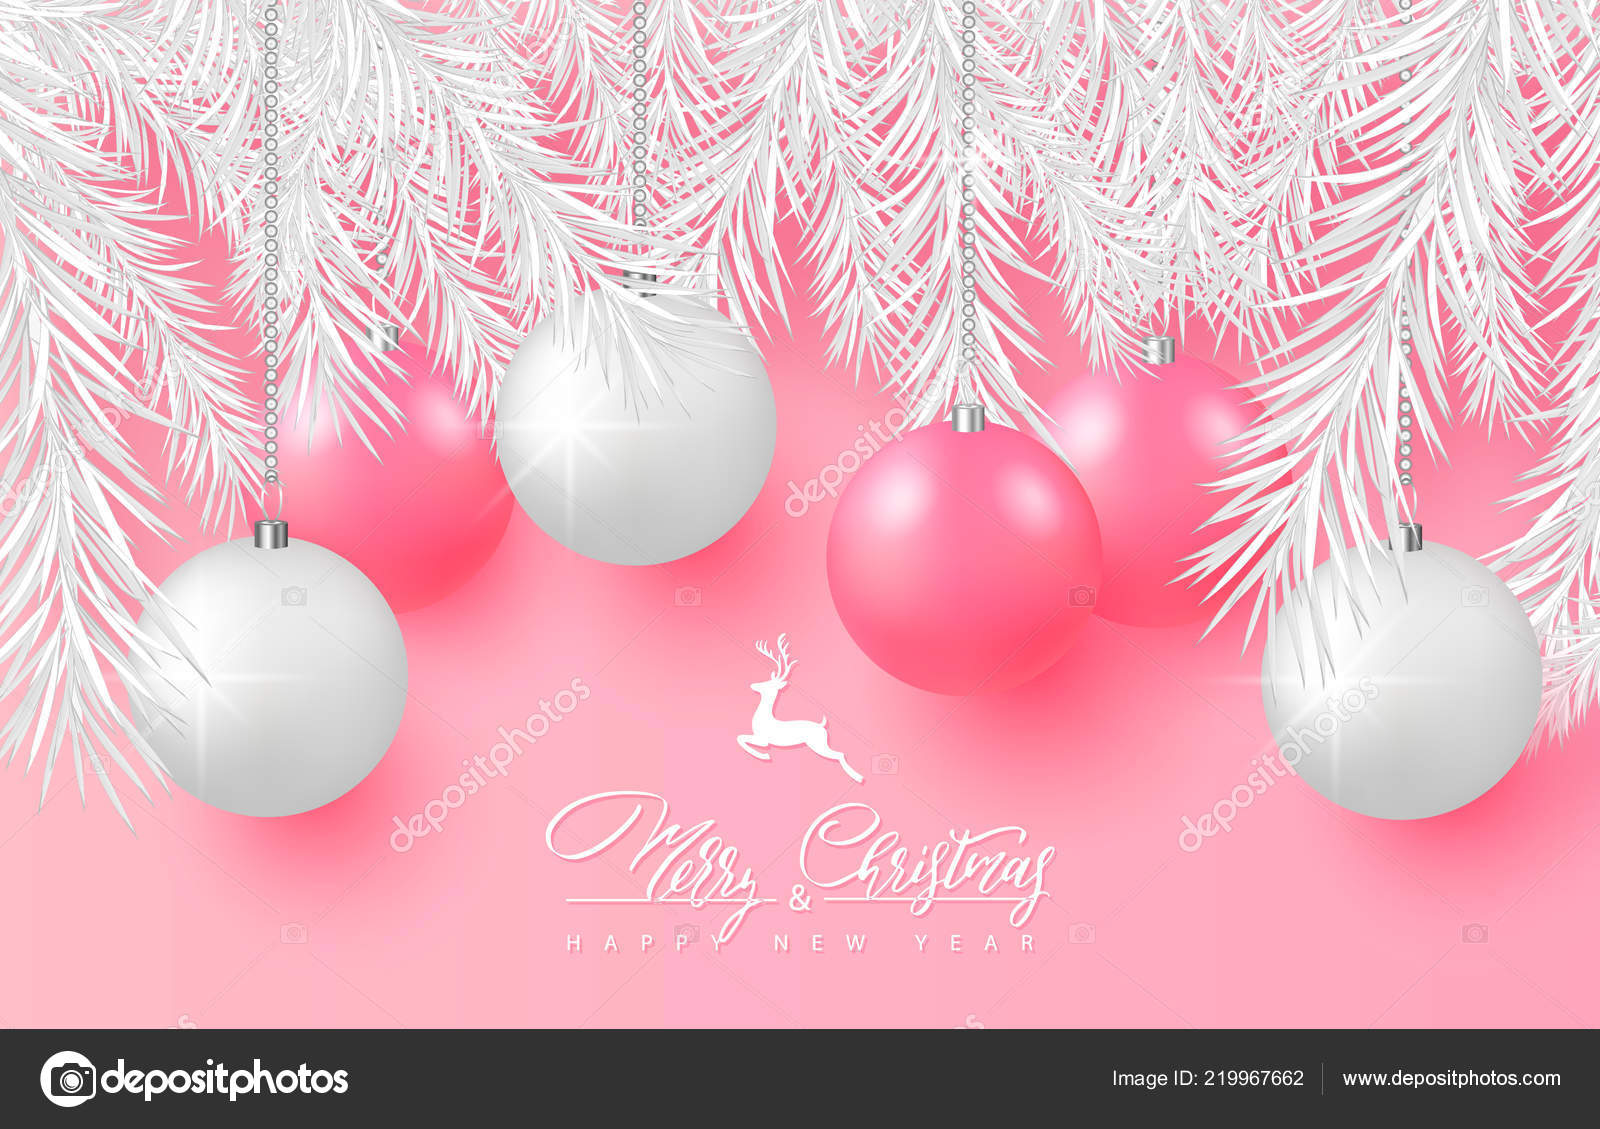 2019 Merry Christmas And Happy New Year Background For